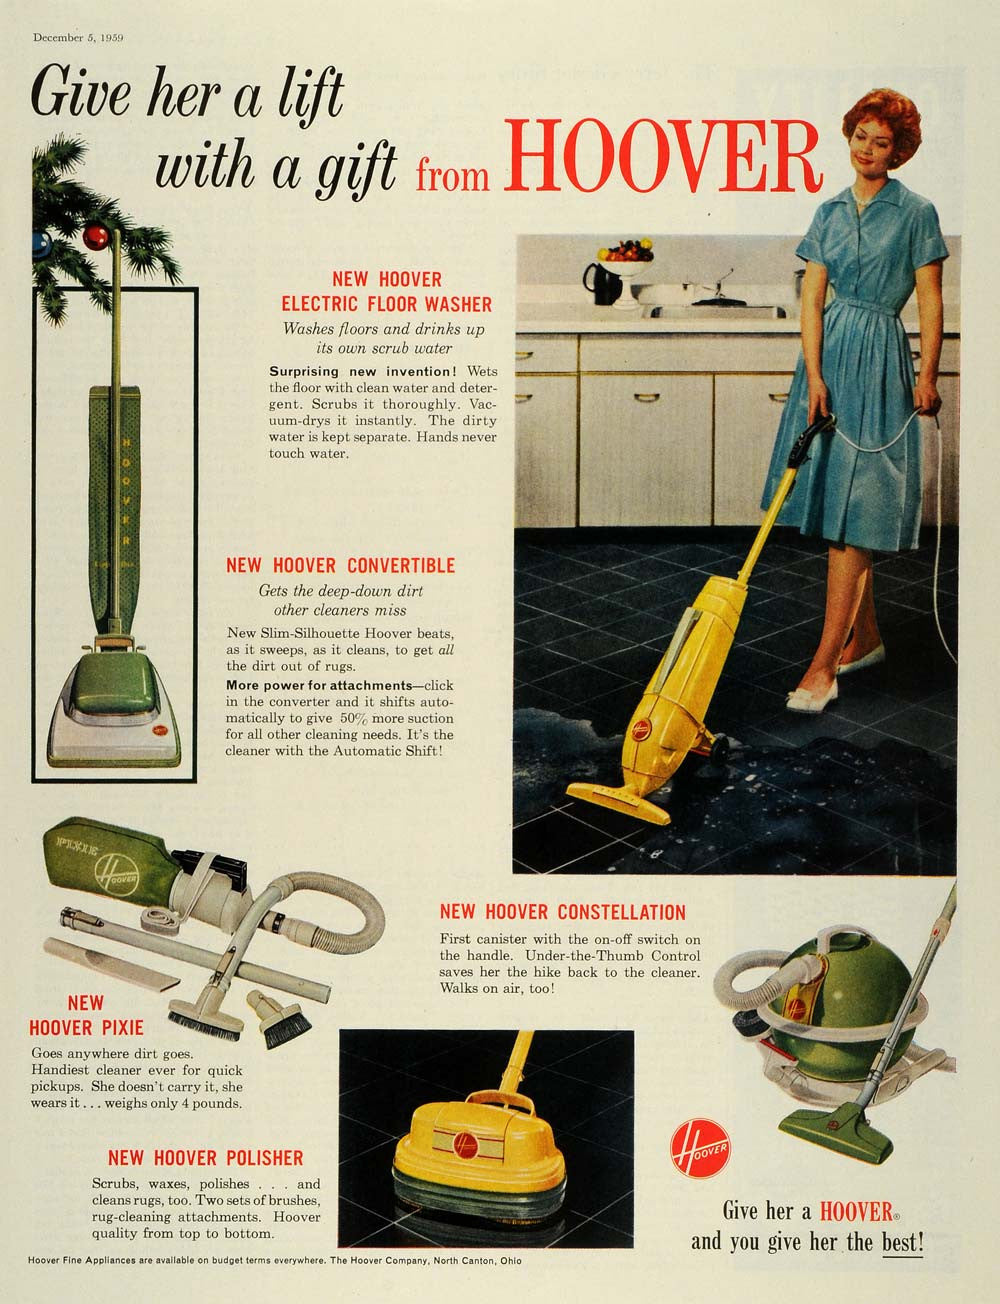 1959 Ad Hoover Electric Floor Washer Convertible Constellation Pixie SEP5